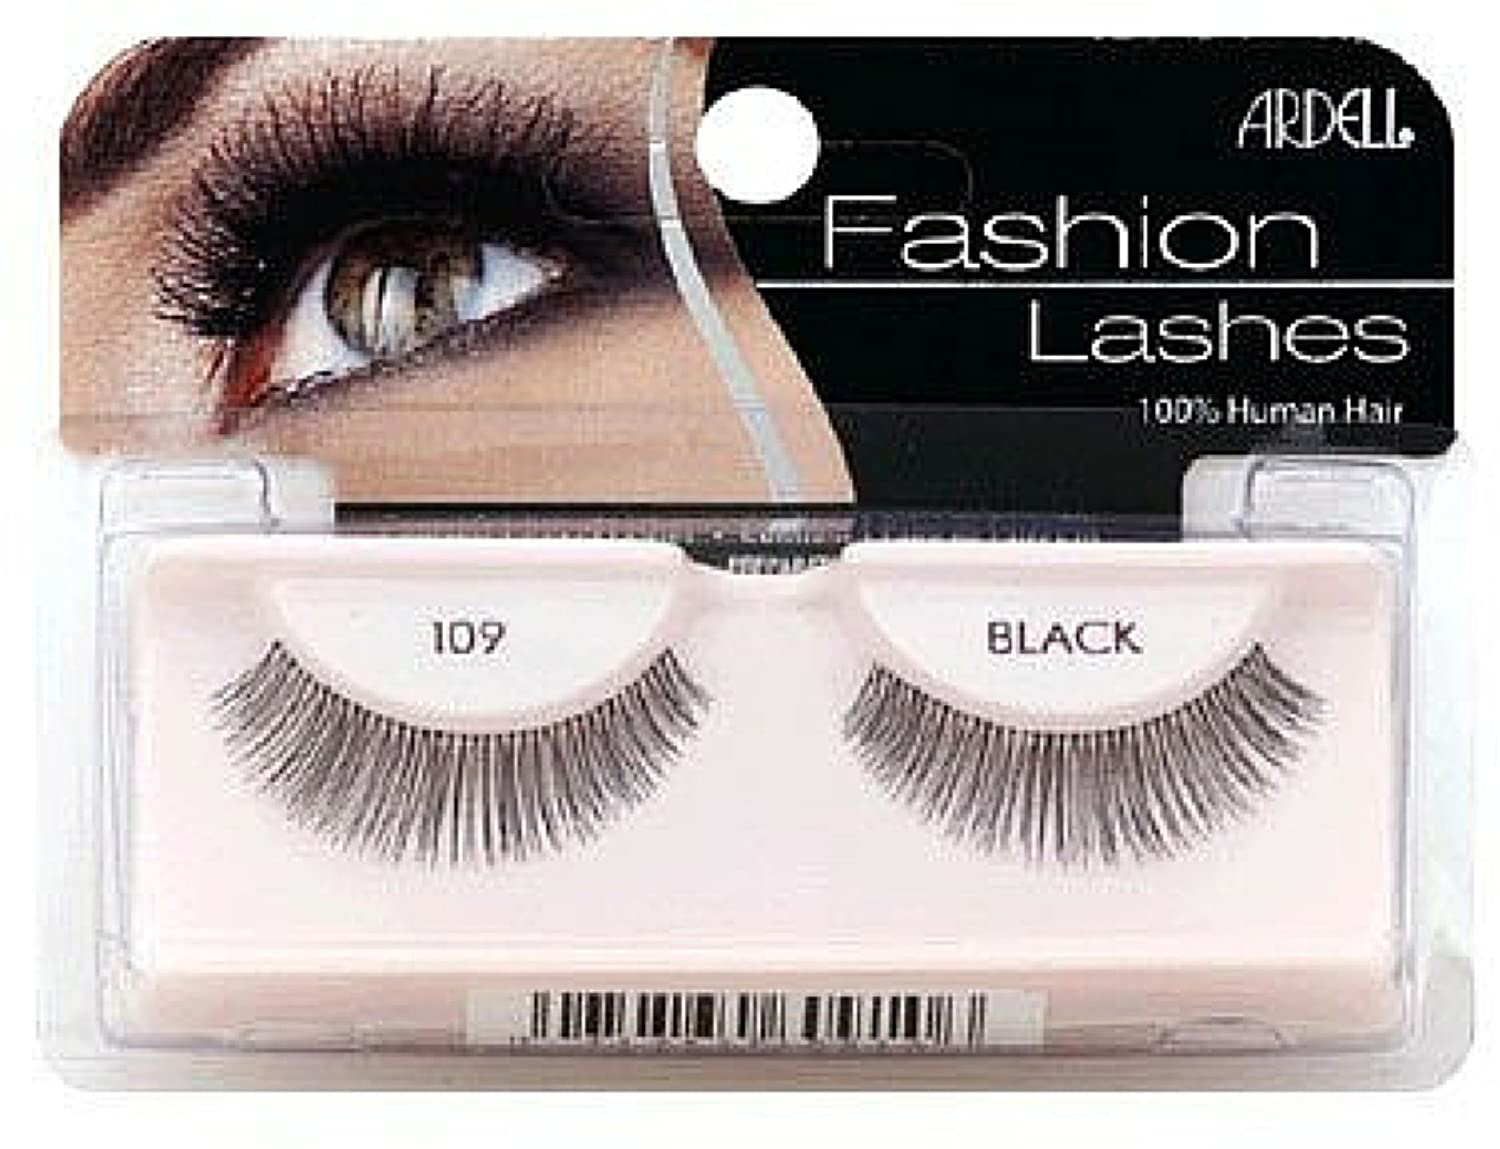 3ce9c502d58 Amazon.com : Ardell Fashion Lashes, Black [109] 1 pair (Pack of 12) : Beauty